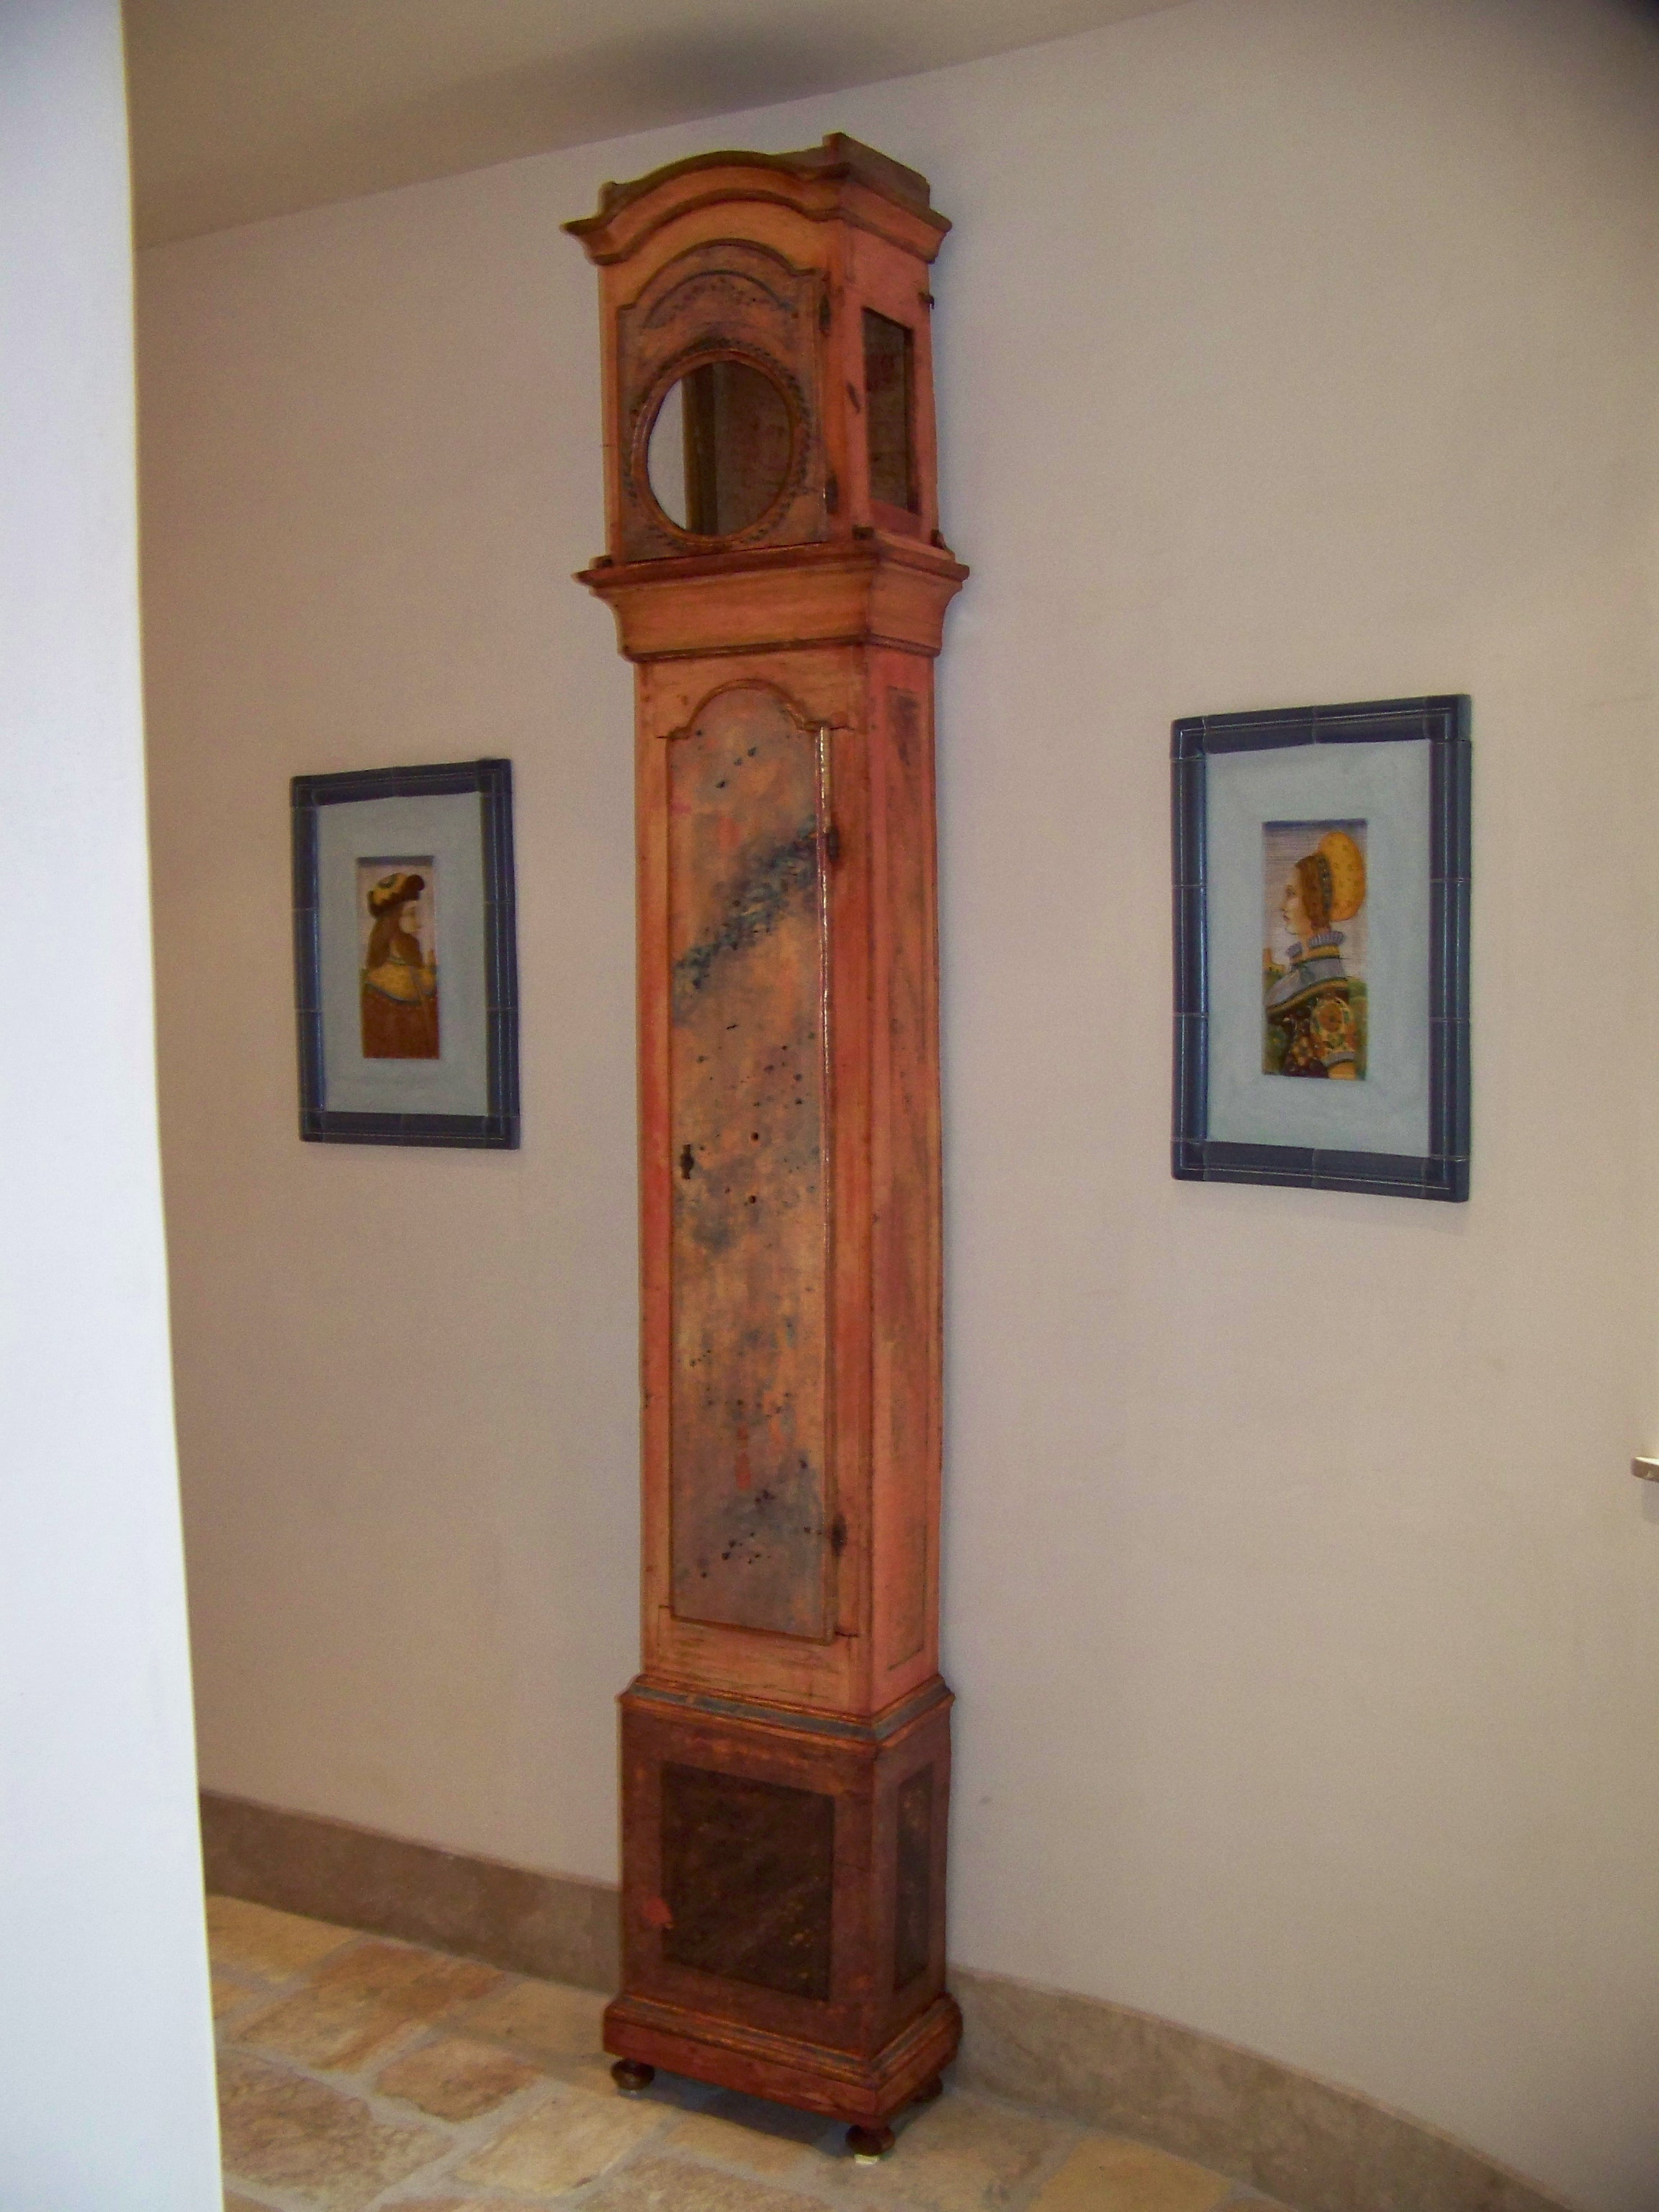 Restored 18th Century Clock